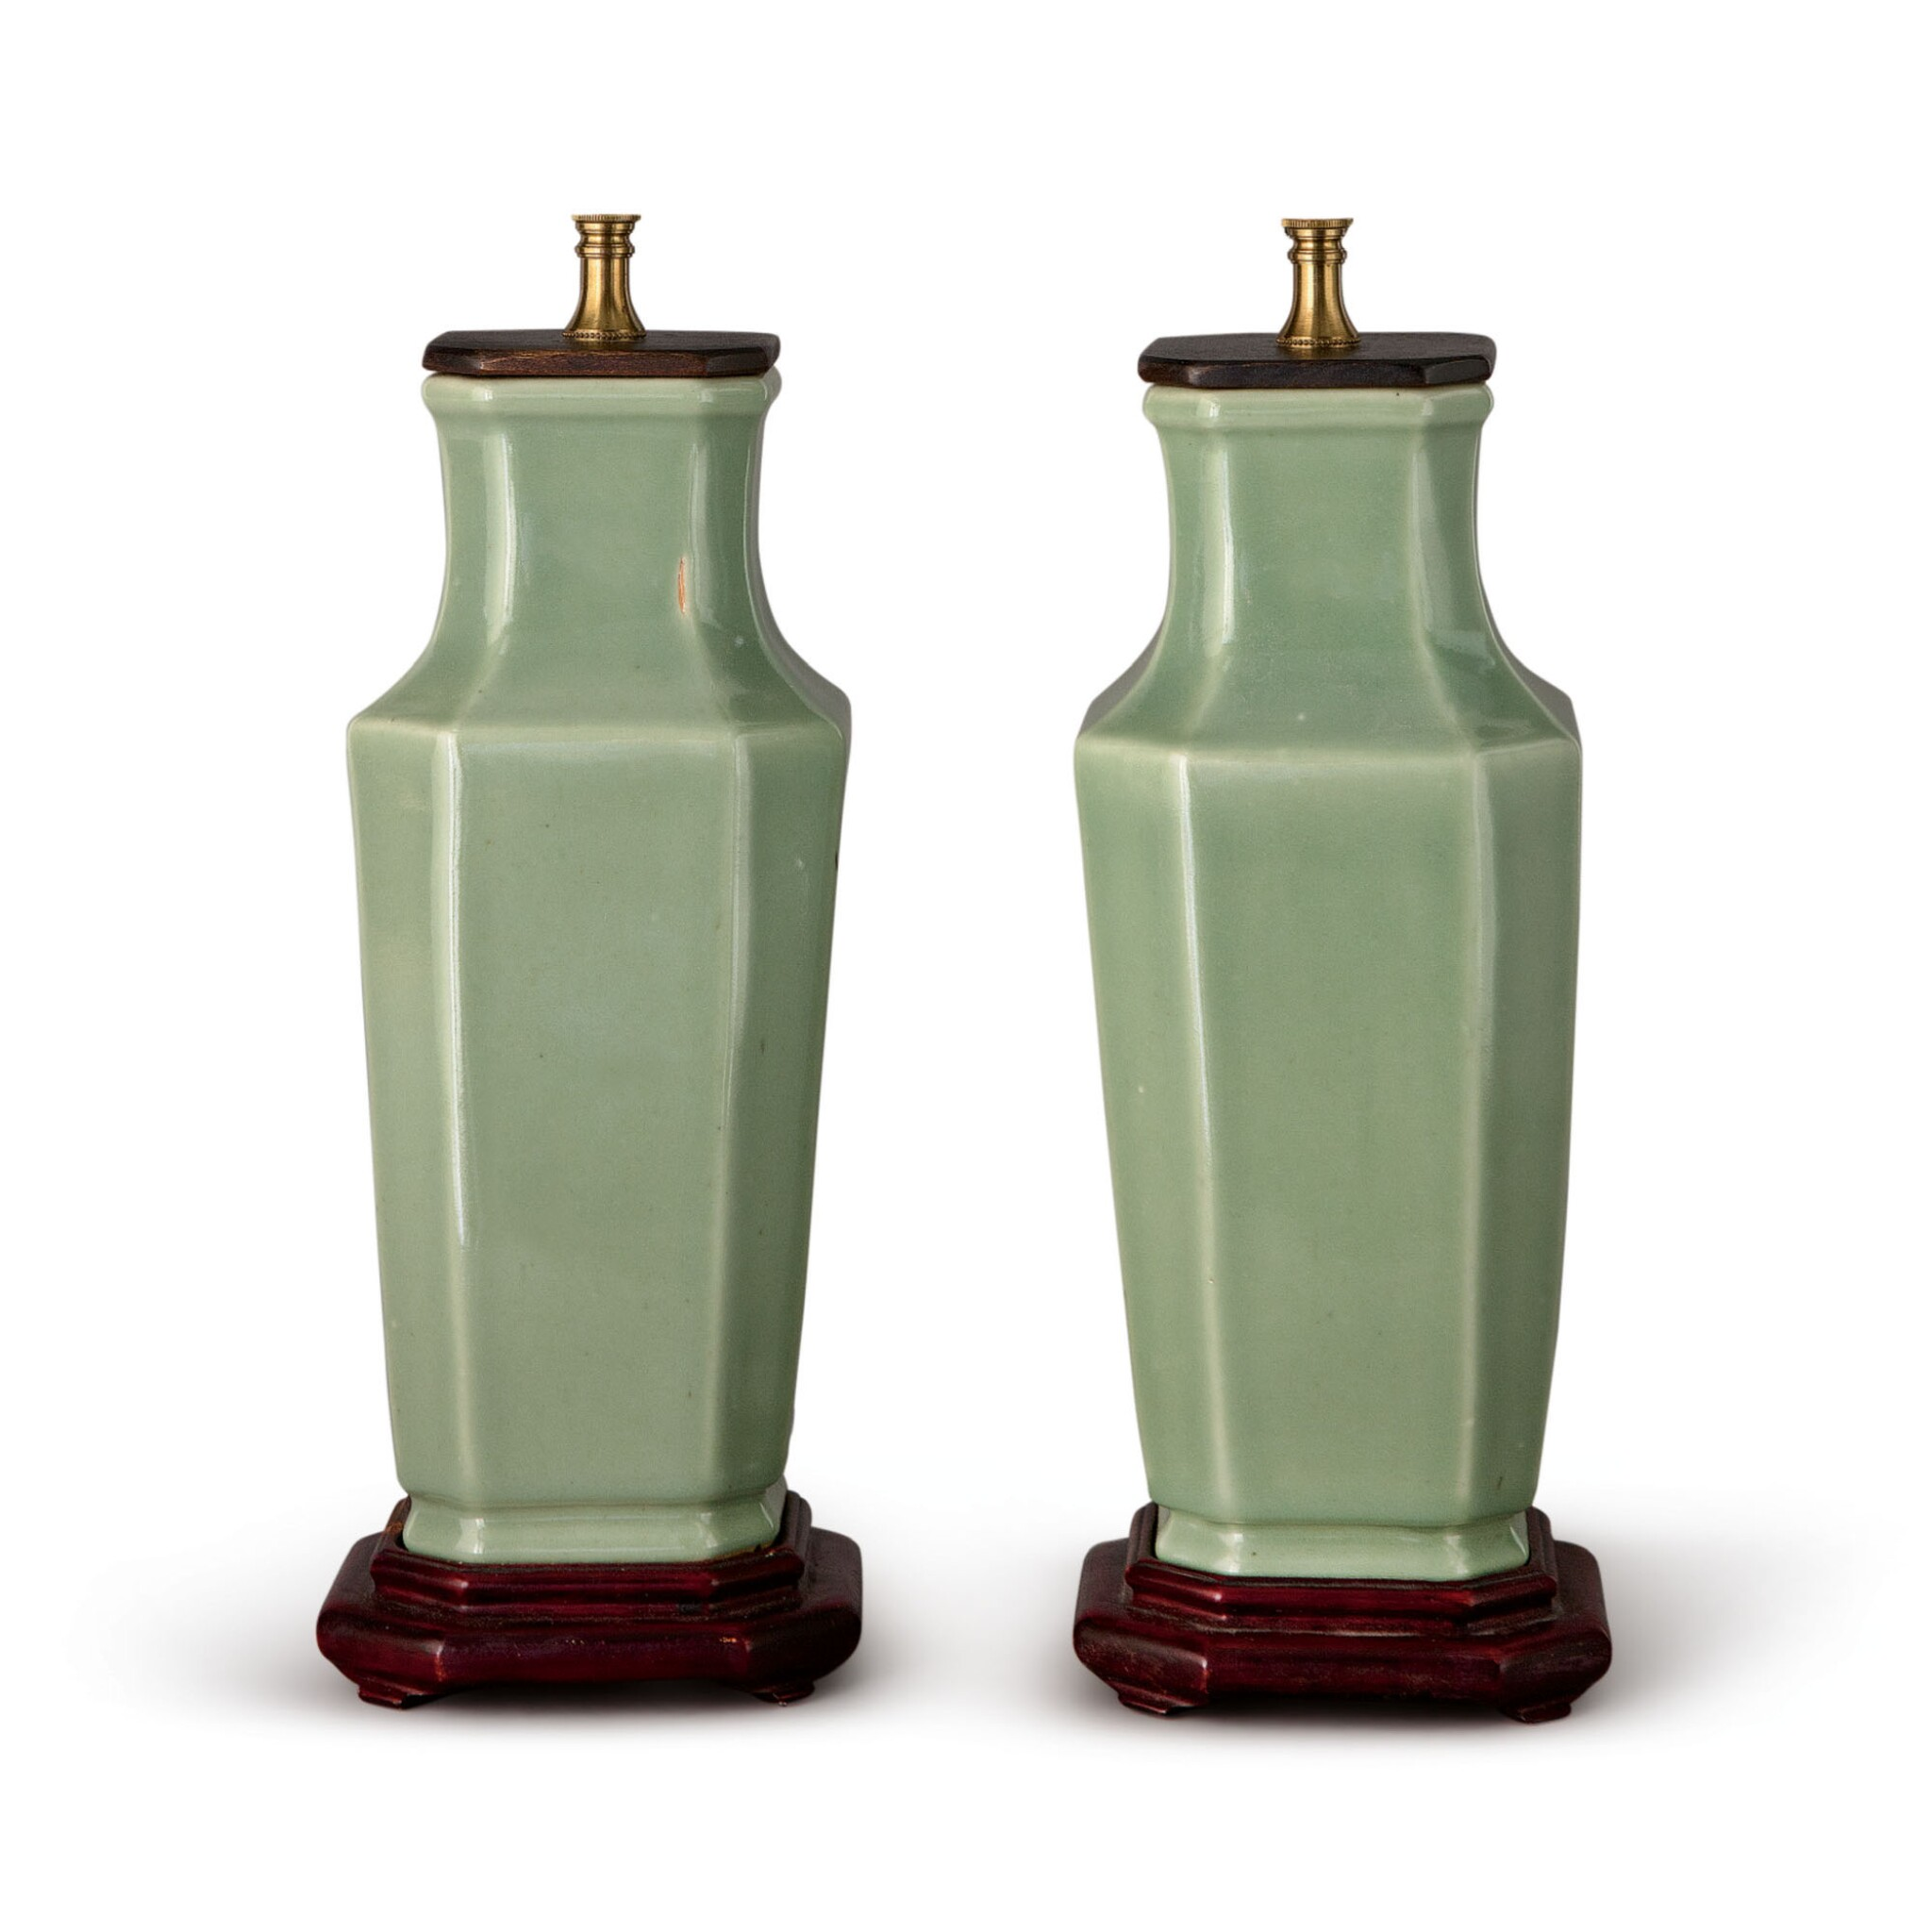 View full screen - View 1 of Lot 576. A PAIR OF CHINESE CELADON-GLAZED OCTAGONAL VASES, 19TH/20TH CENTURY.